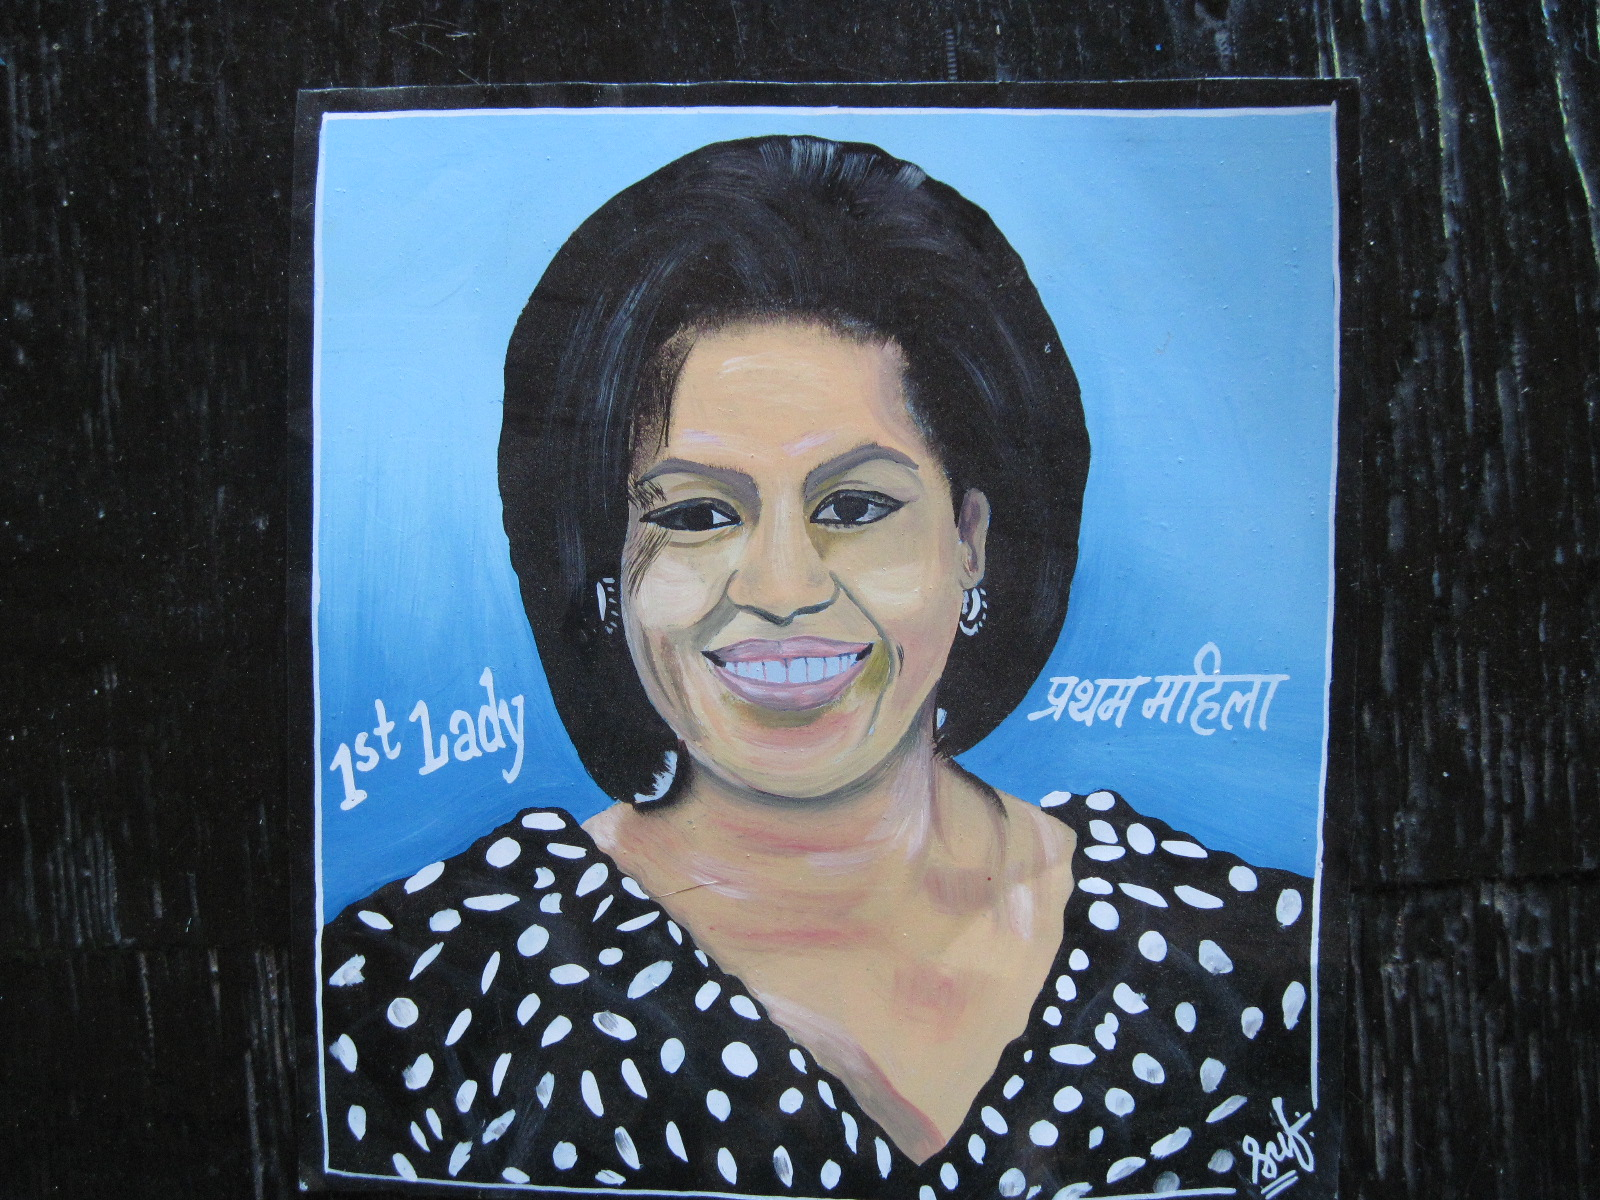 Folk art portrait of Michelle Obama hand painted on metal by a sign painter in Nepal